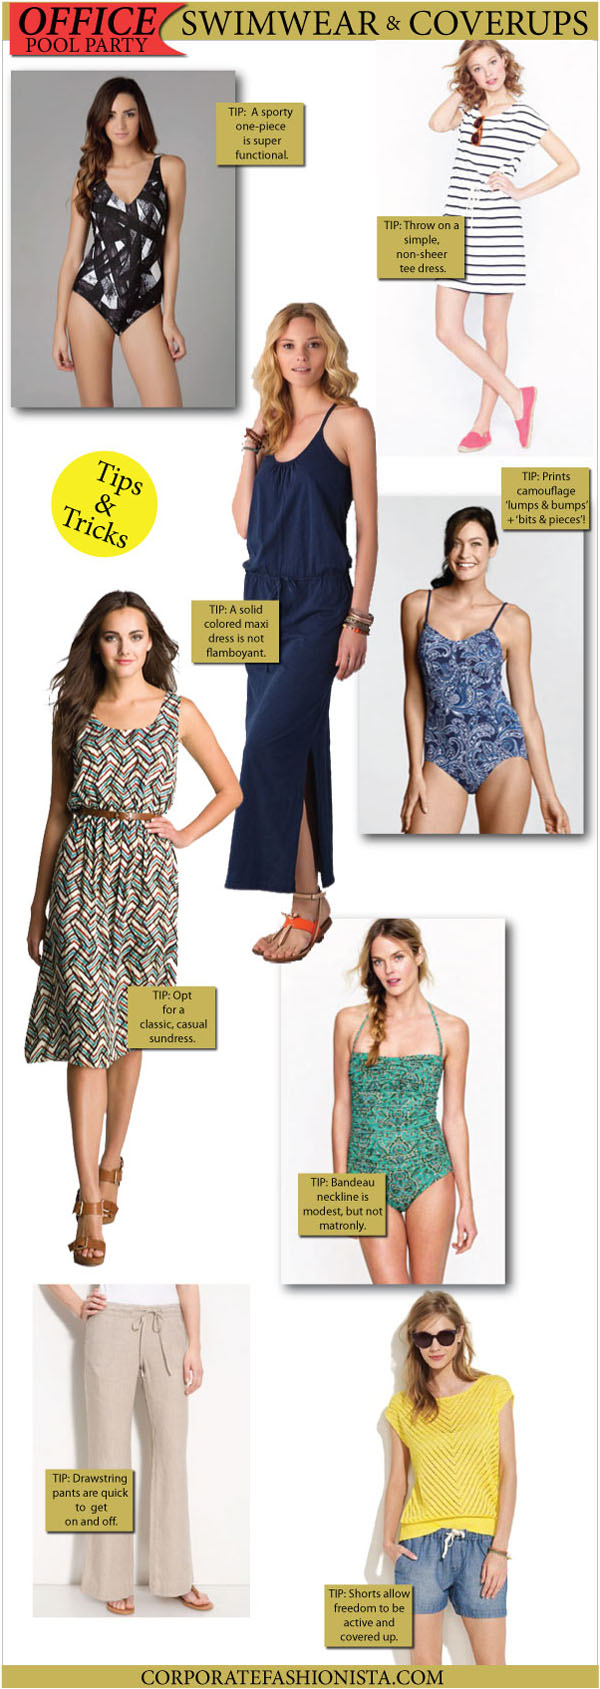 986976462095e What To Wear To The Company Pool Party - Corporate Fashionista